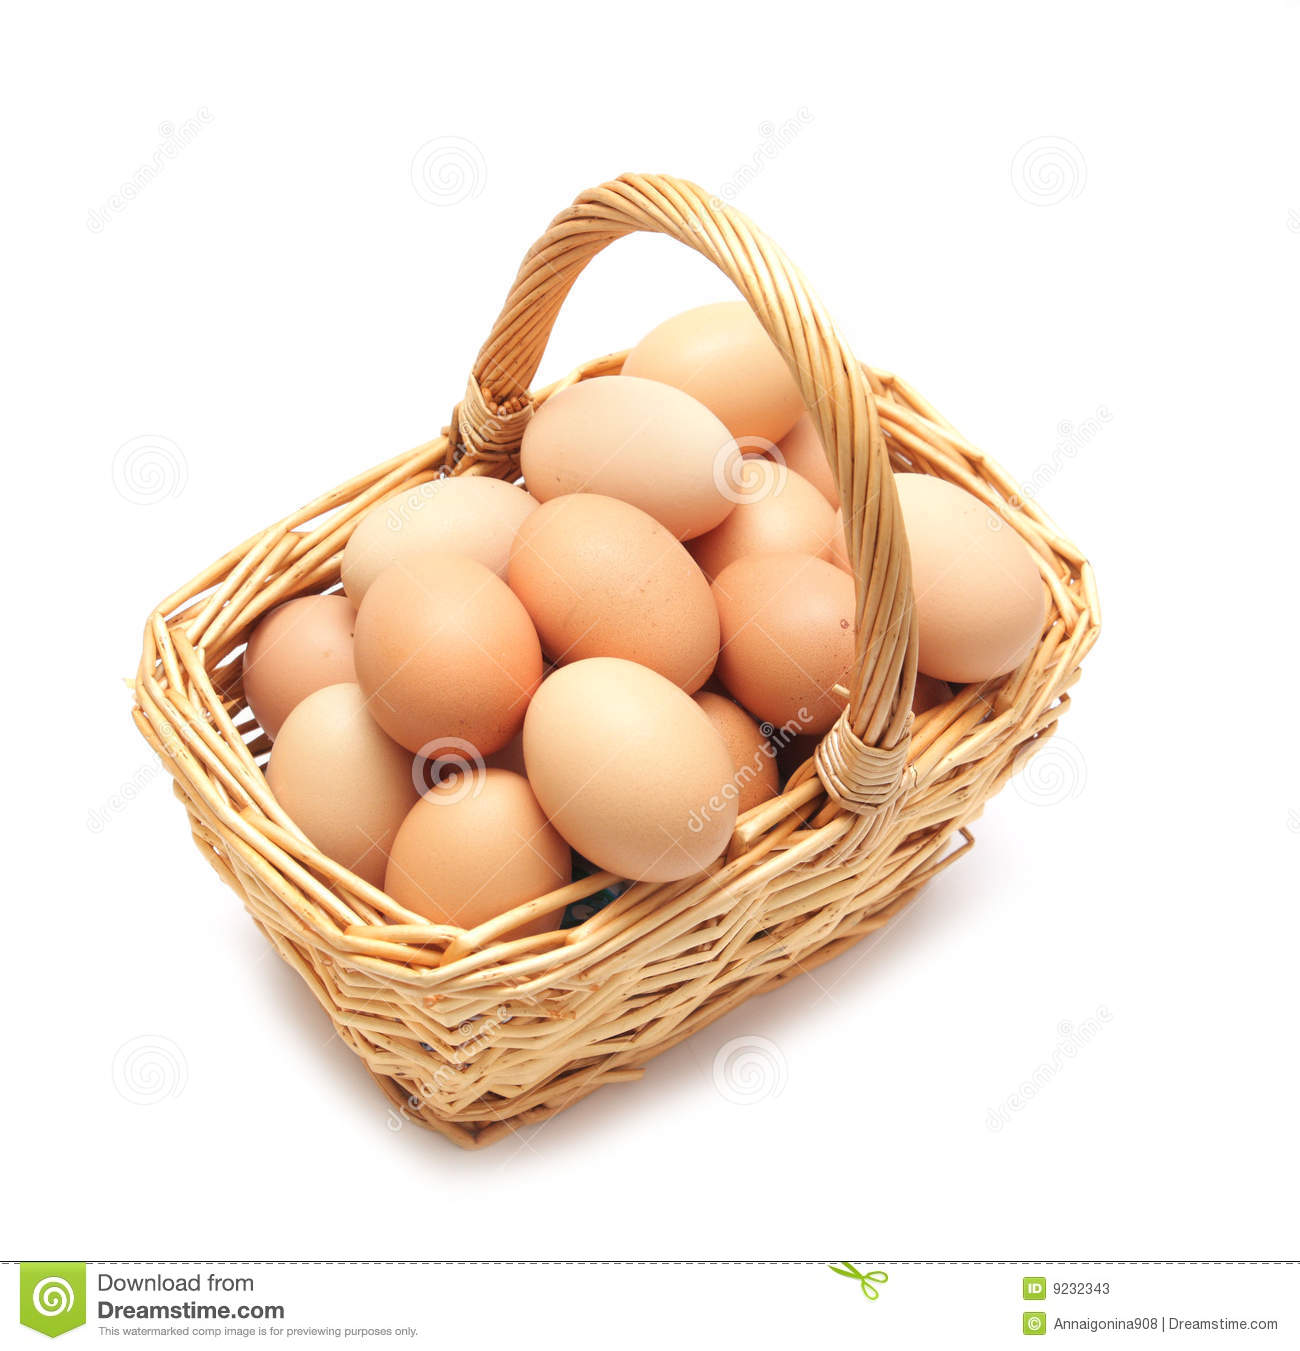 eggs in one basket dating site So t he best thing you can do to avoid being affected by this is not to put all your eggs in one basket,  online dating site iphone dating app android dating app.